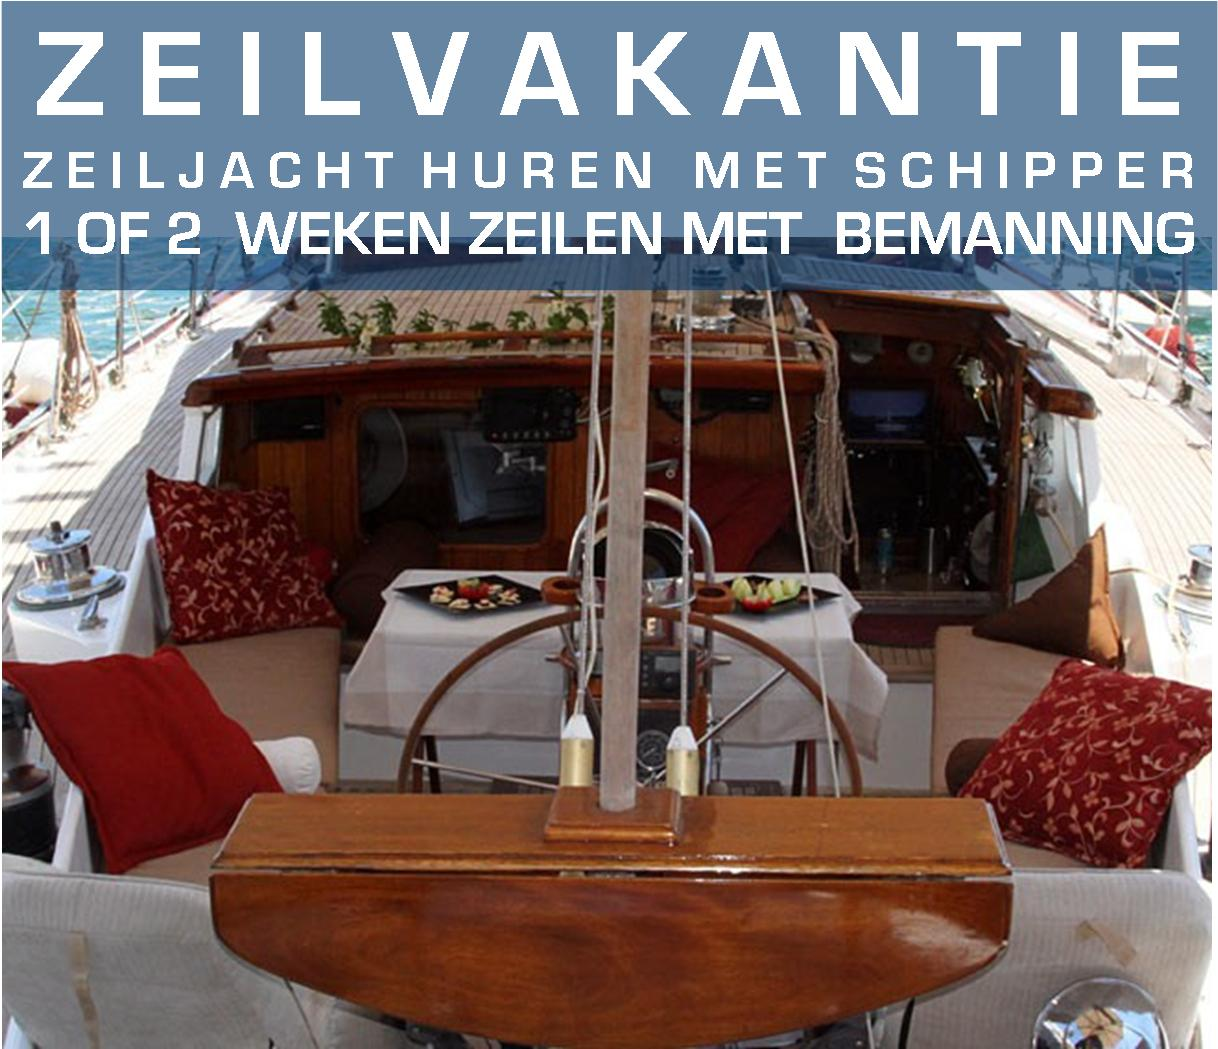 Zeilweek met schipper  vanaf Rhodos | Sailweek with schipper from on Rhodes | Sail in Greece | sail-in-greece.net